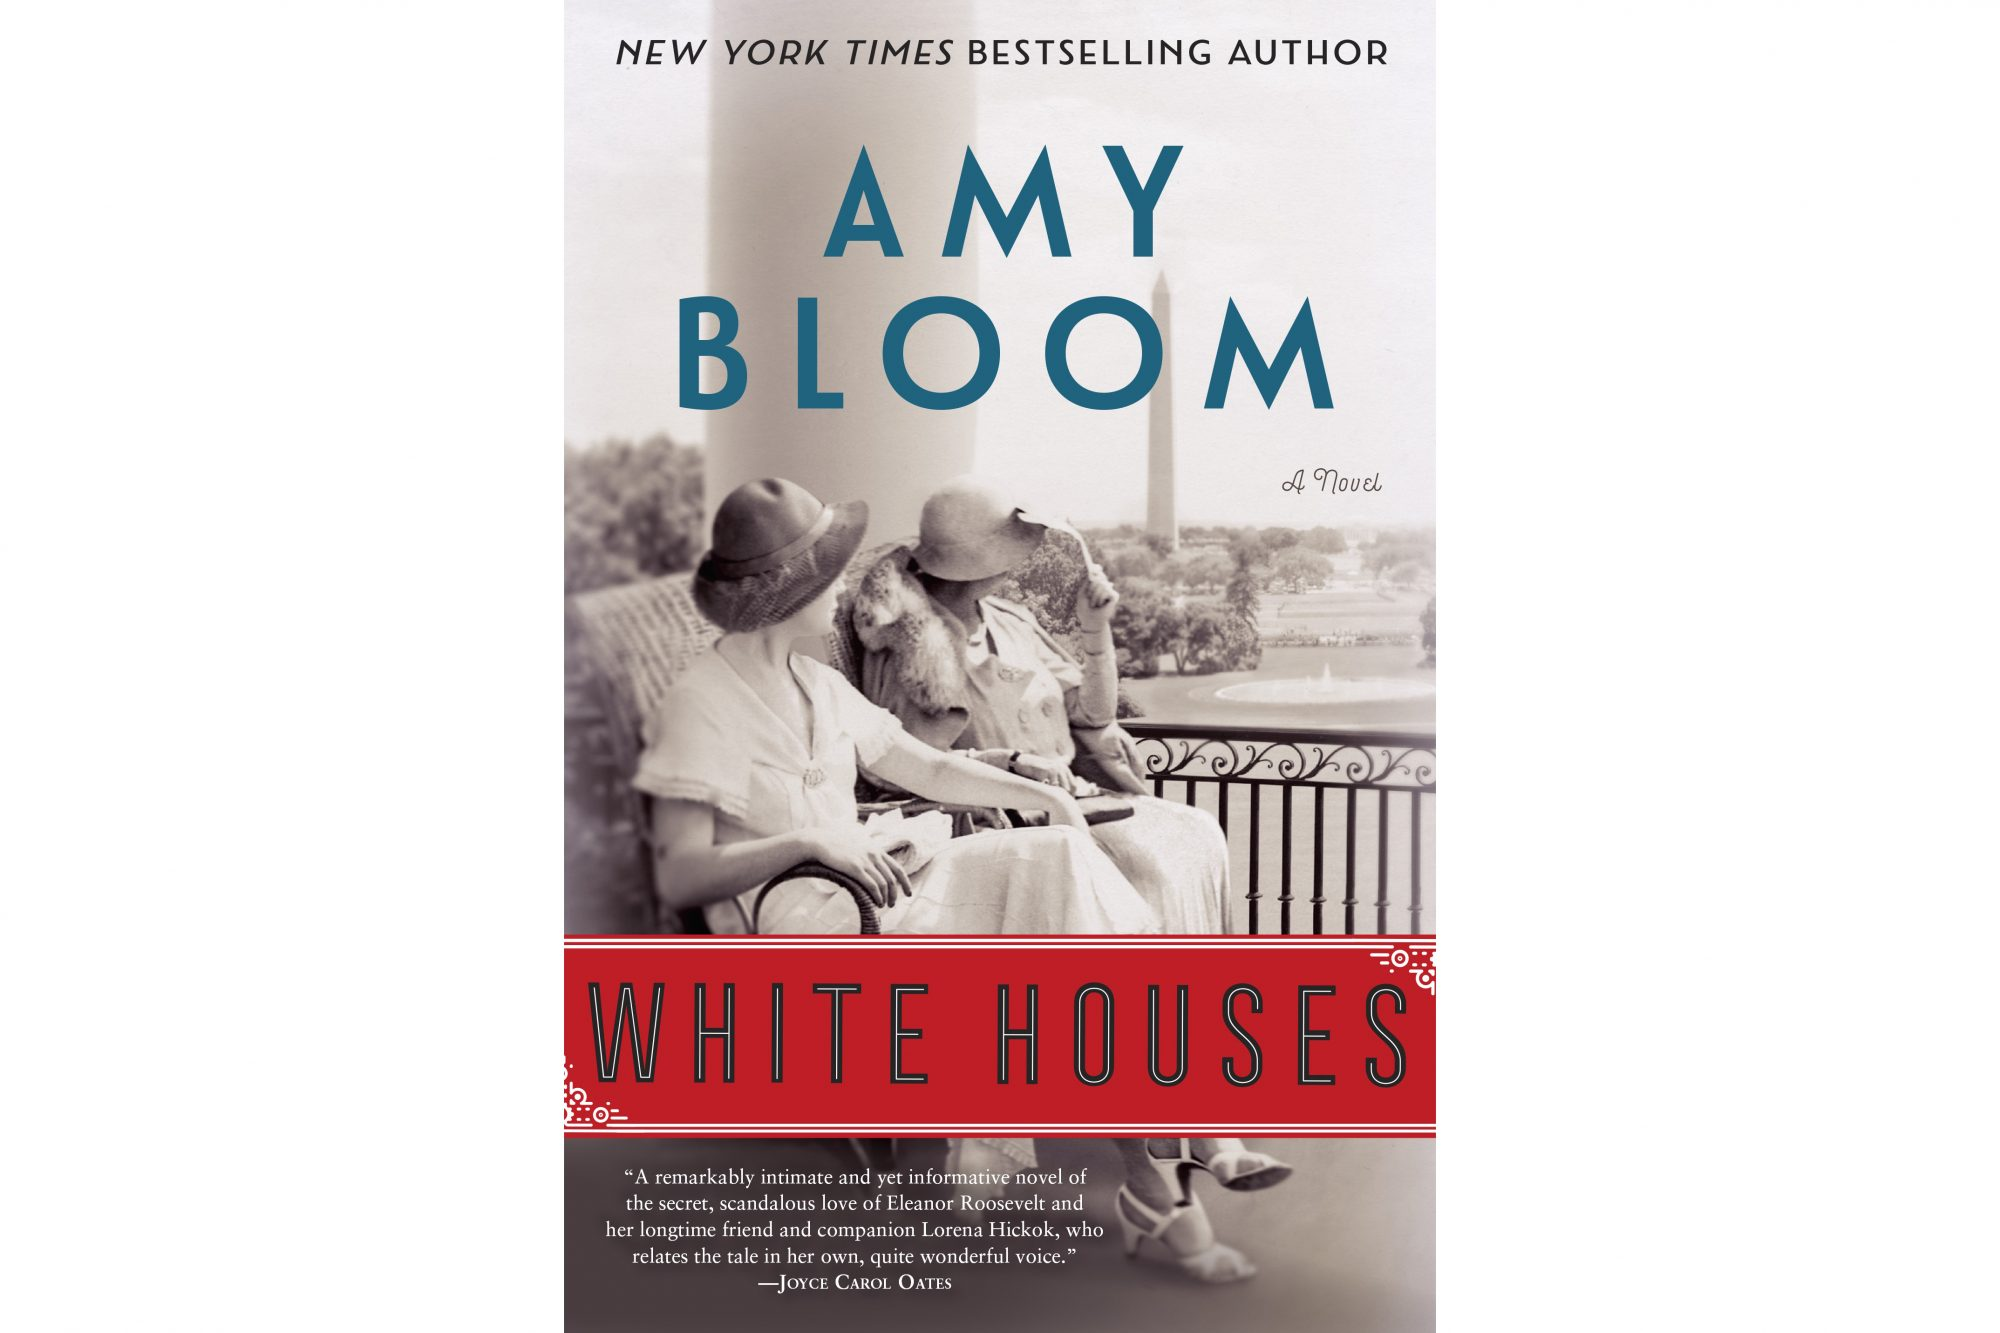 White Houses, by Amy Bloom